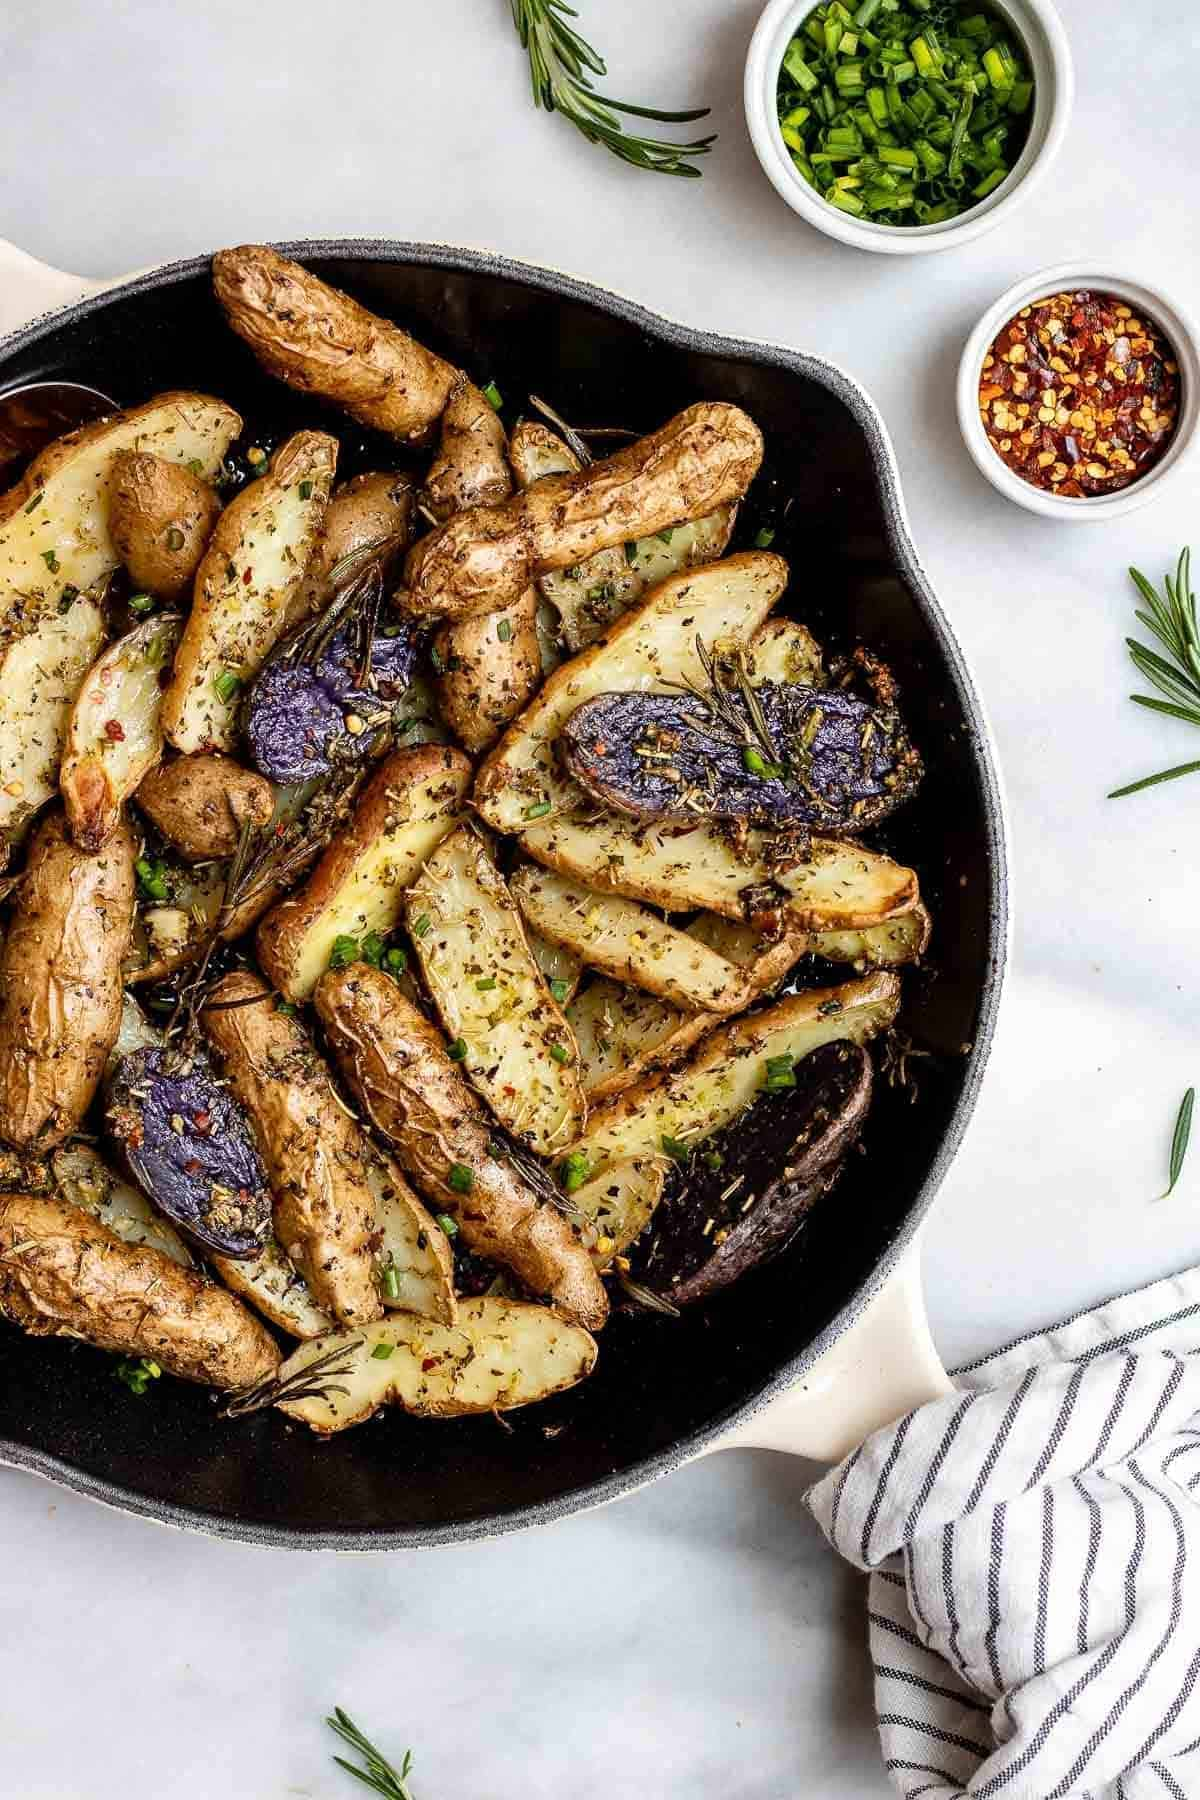 Roasted fingerling potatoes in a cast iron skillet with a towel on the handle.